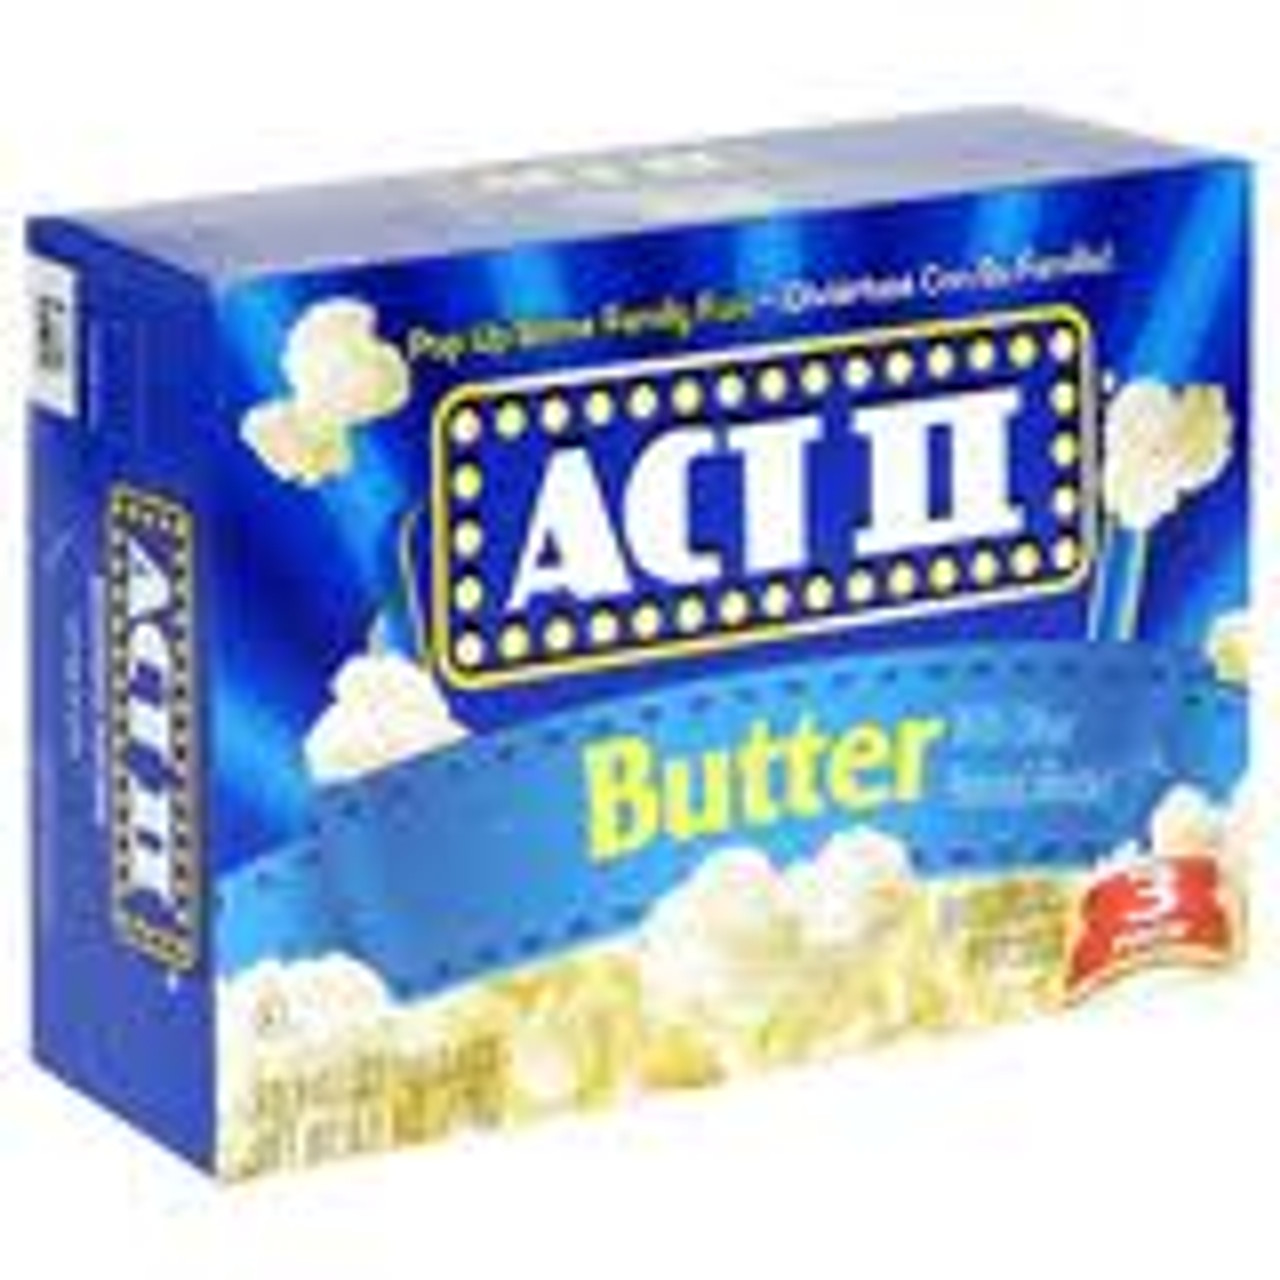 When looking for a warm, wholesome snack that's fun to share with your family and friends, pop up some fun with ACT II microwave popcorn.